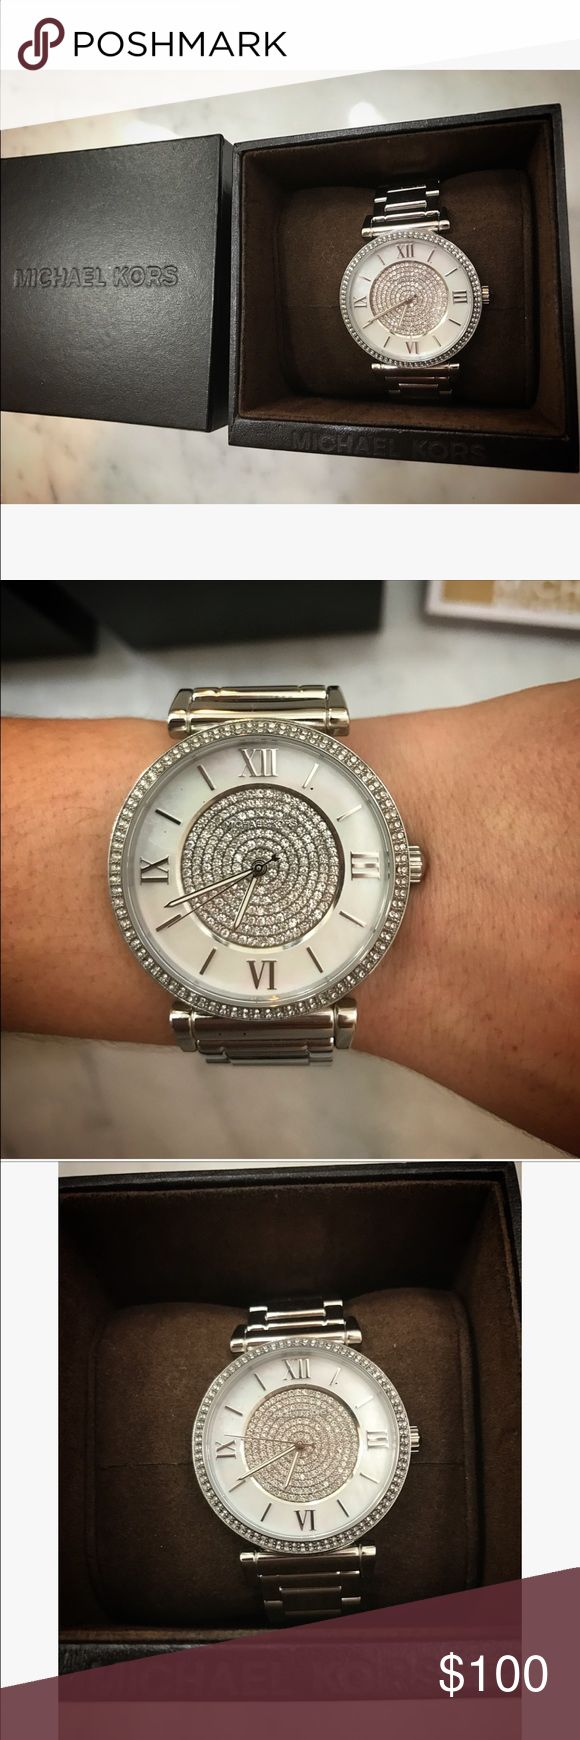 Michael Kors Watch Michael Kors Watch, new with tags, classic and perfect for all occasions, silver with bling accents, also check out my listing for a matching bracelet Michael Kors Accessories Watches